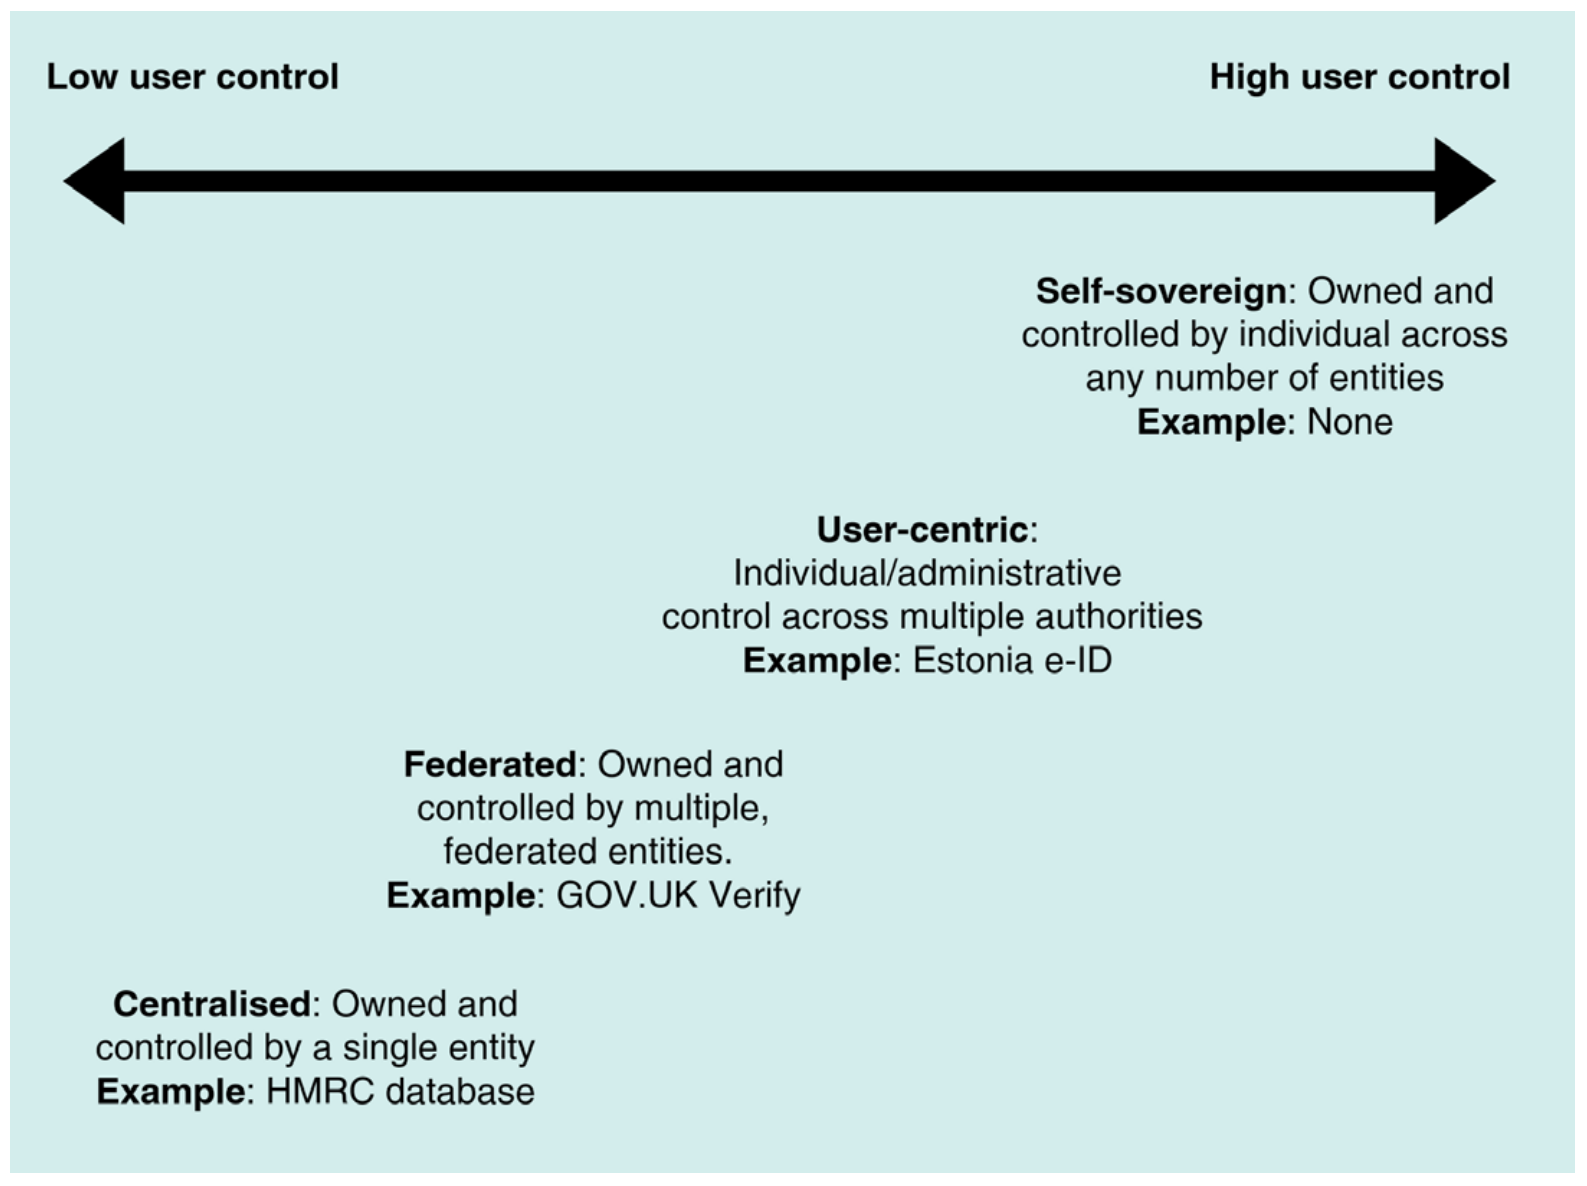 Diagram of low user control to high user control for identity sovereignty